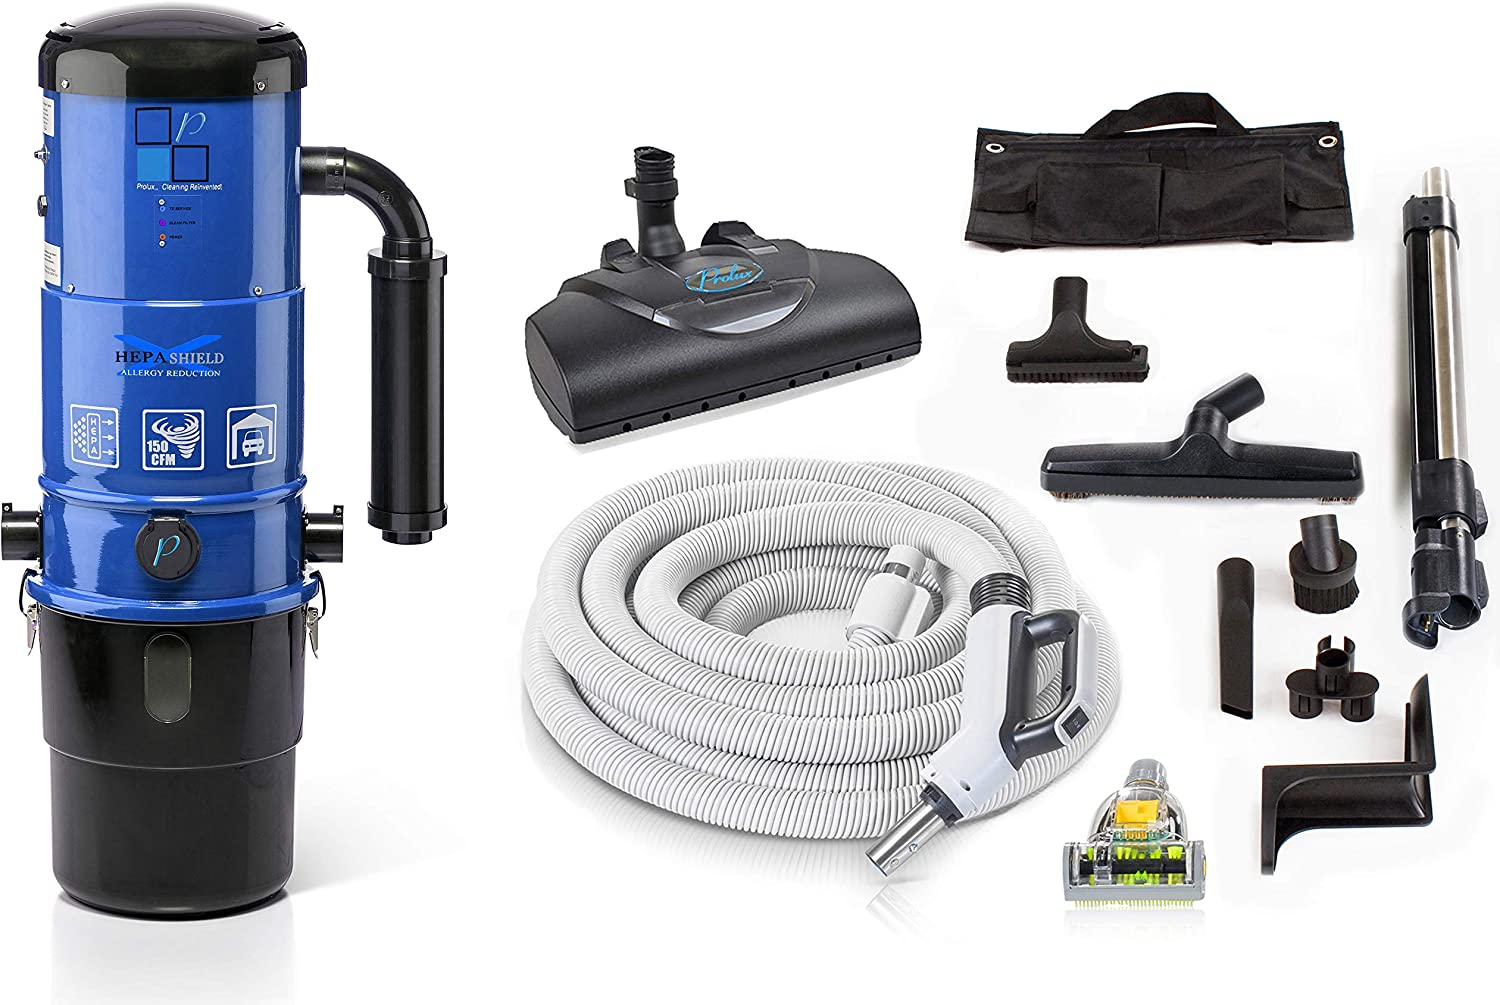 Prolux CV12000 Central Vacuum Unit System with Prolux Power Nozzle Kit and 25 Year Warranty